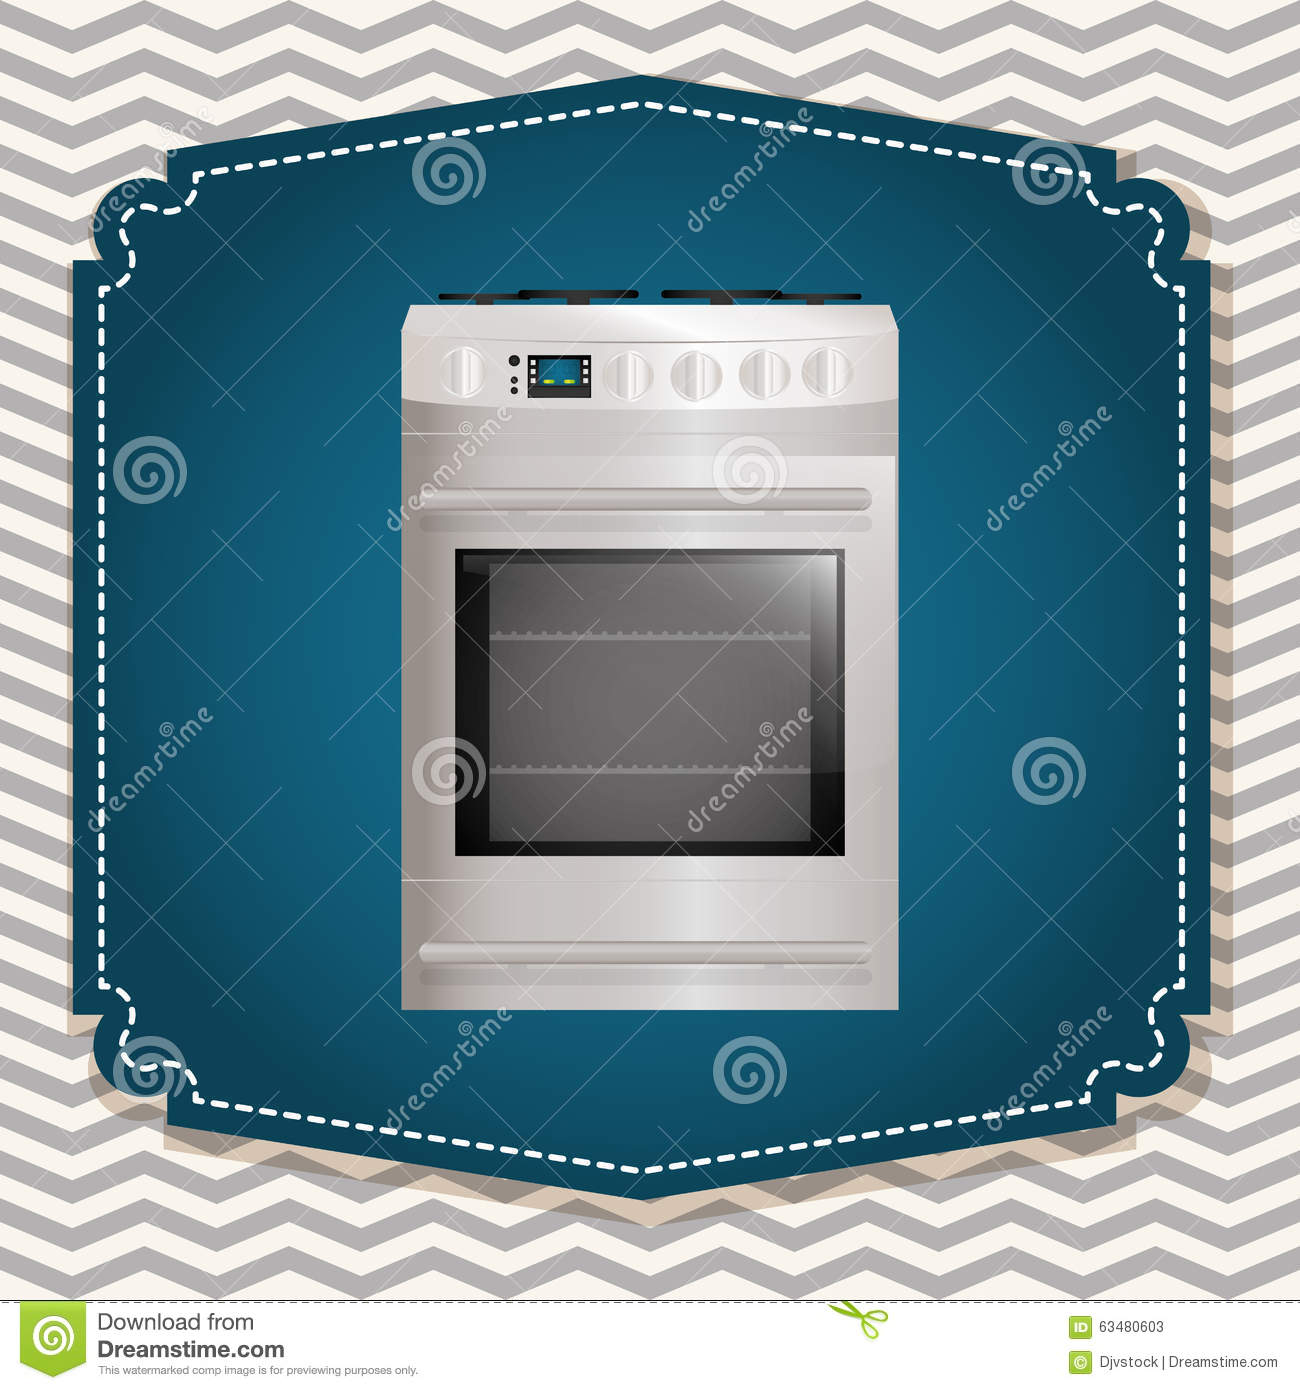 House appliances design stock vector image 63480603 for Household appliances design